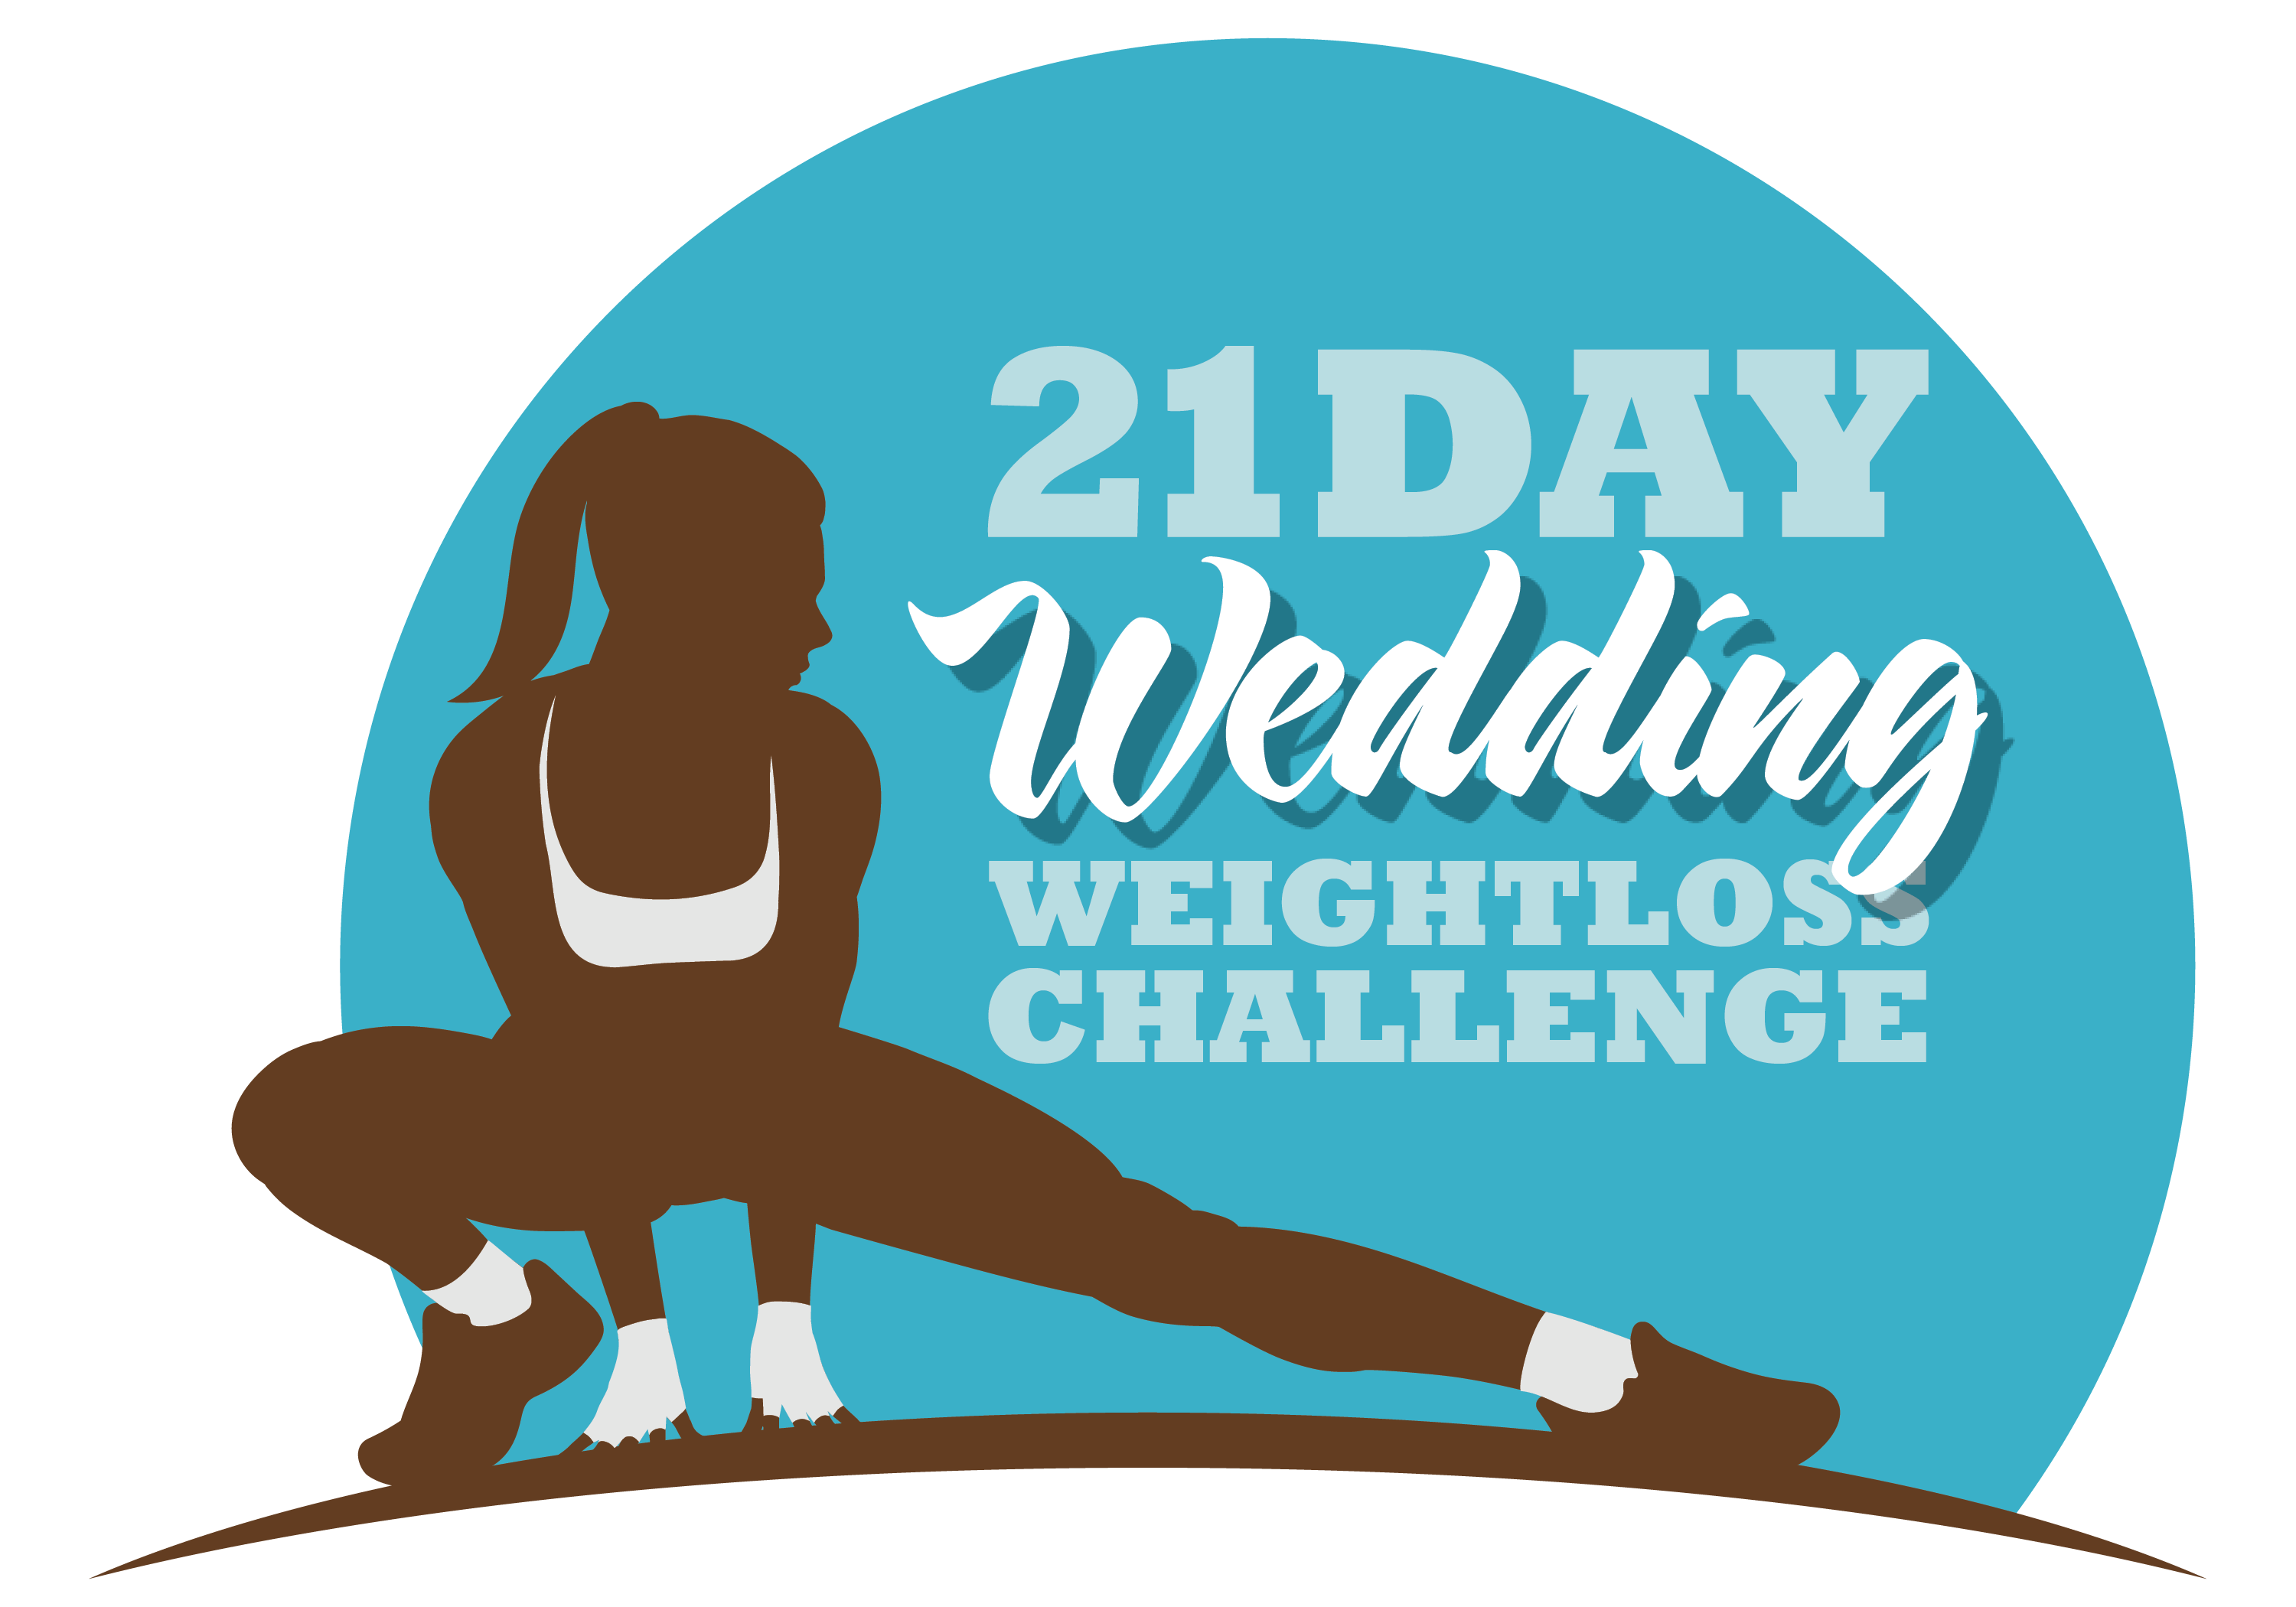 21 Day Wedding Weight Loss